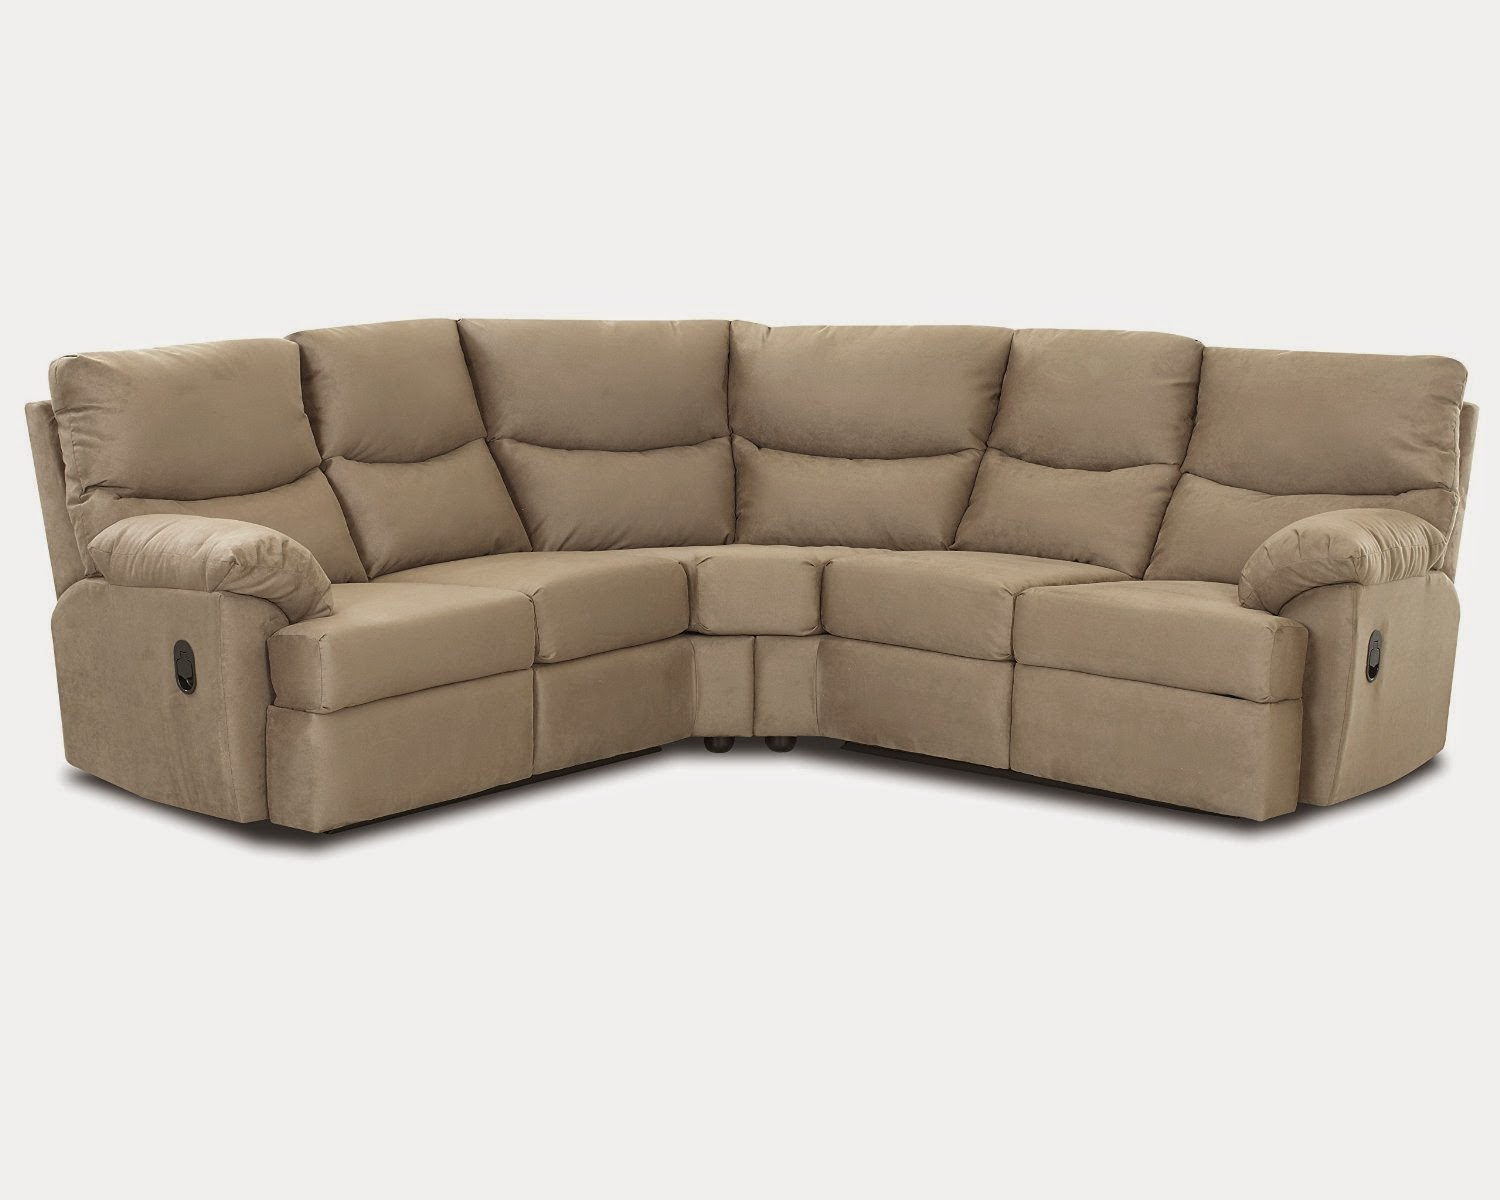 Top Seller Reclining And Recliner Sofa Loveseat: Phoenix ...